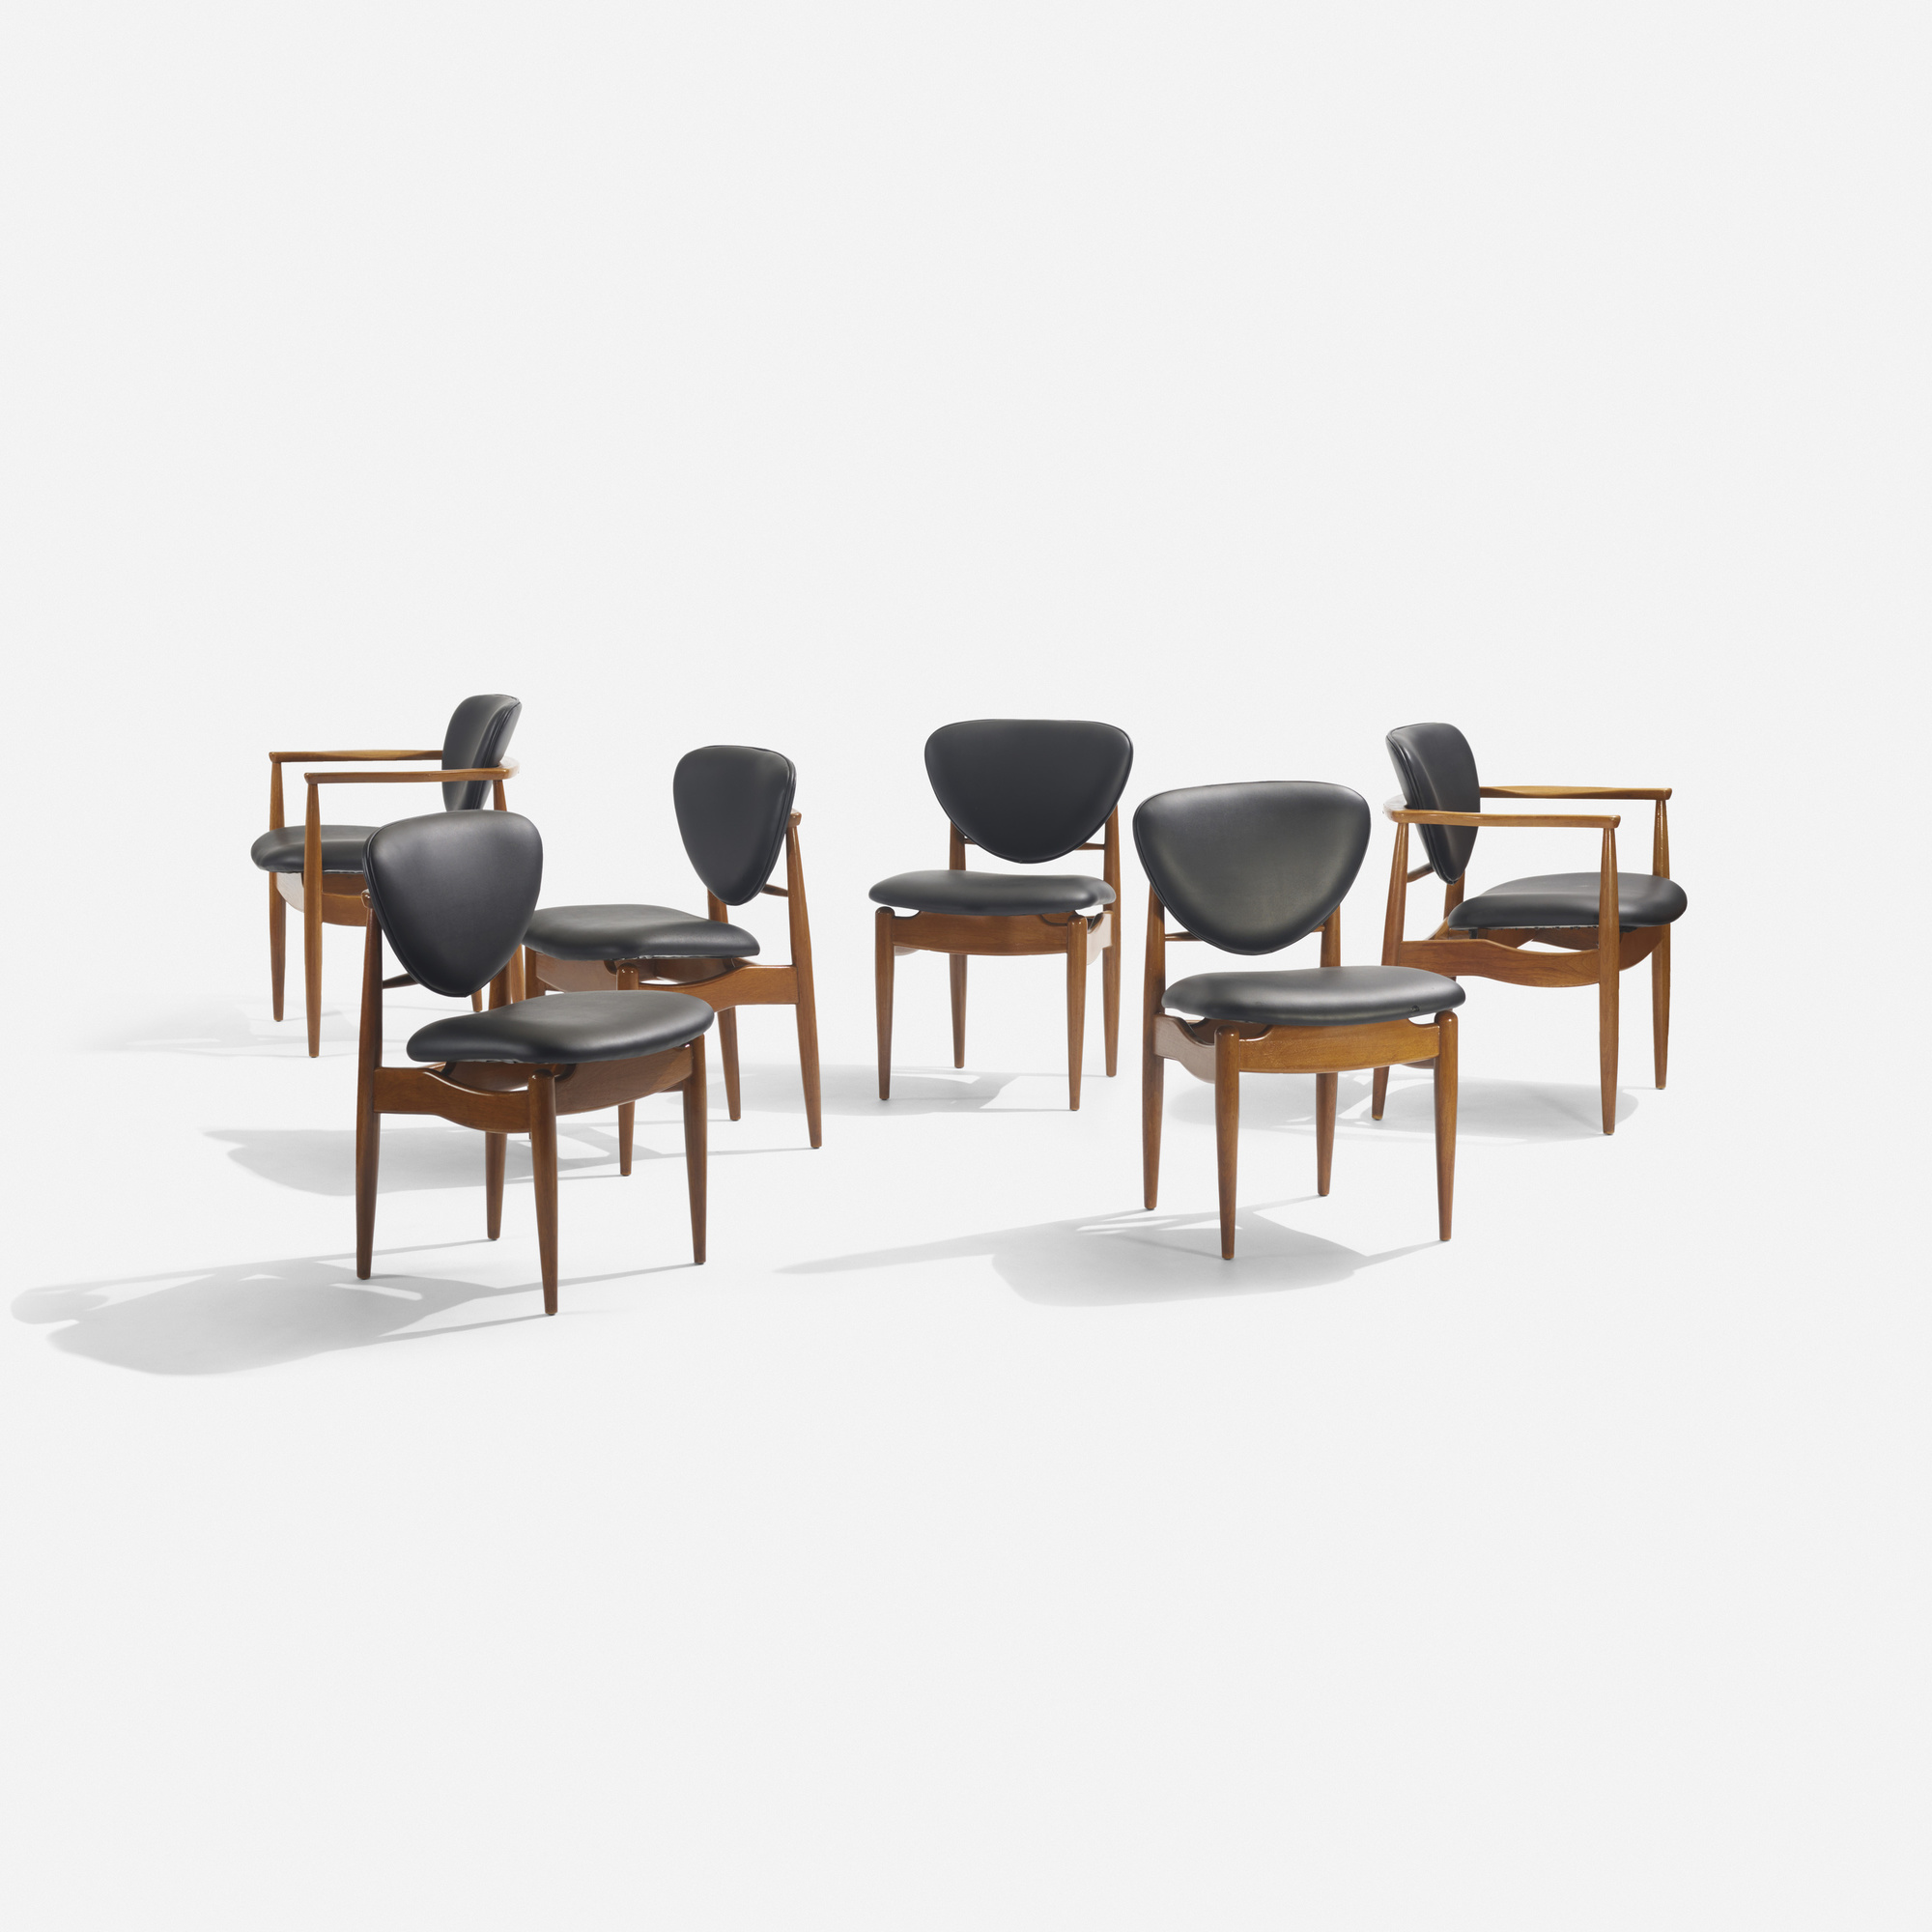 135: In the manner of Finn Juhl / dining chairs, set of six (1 of 2)